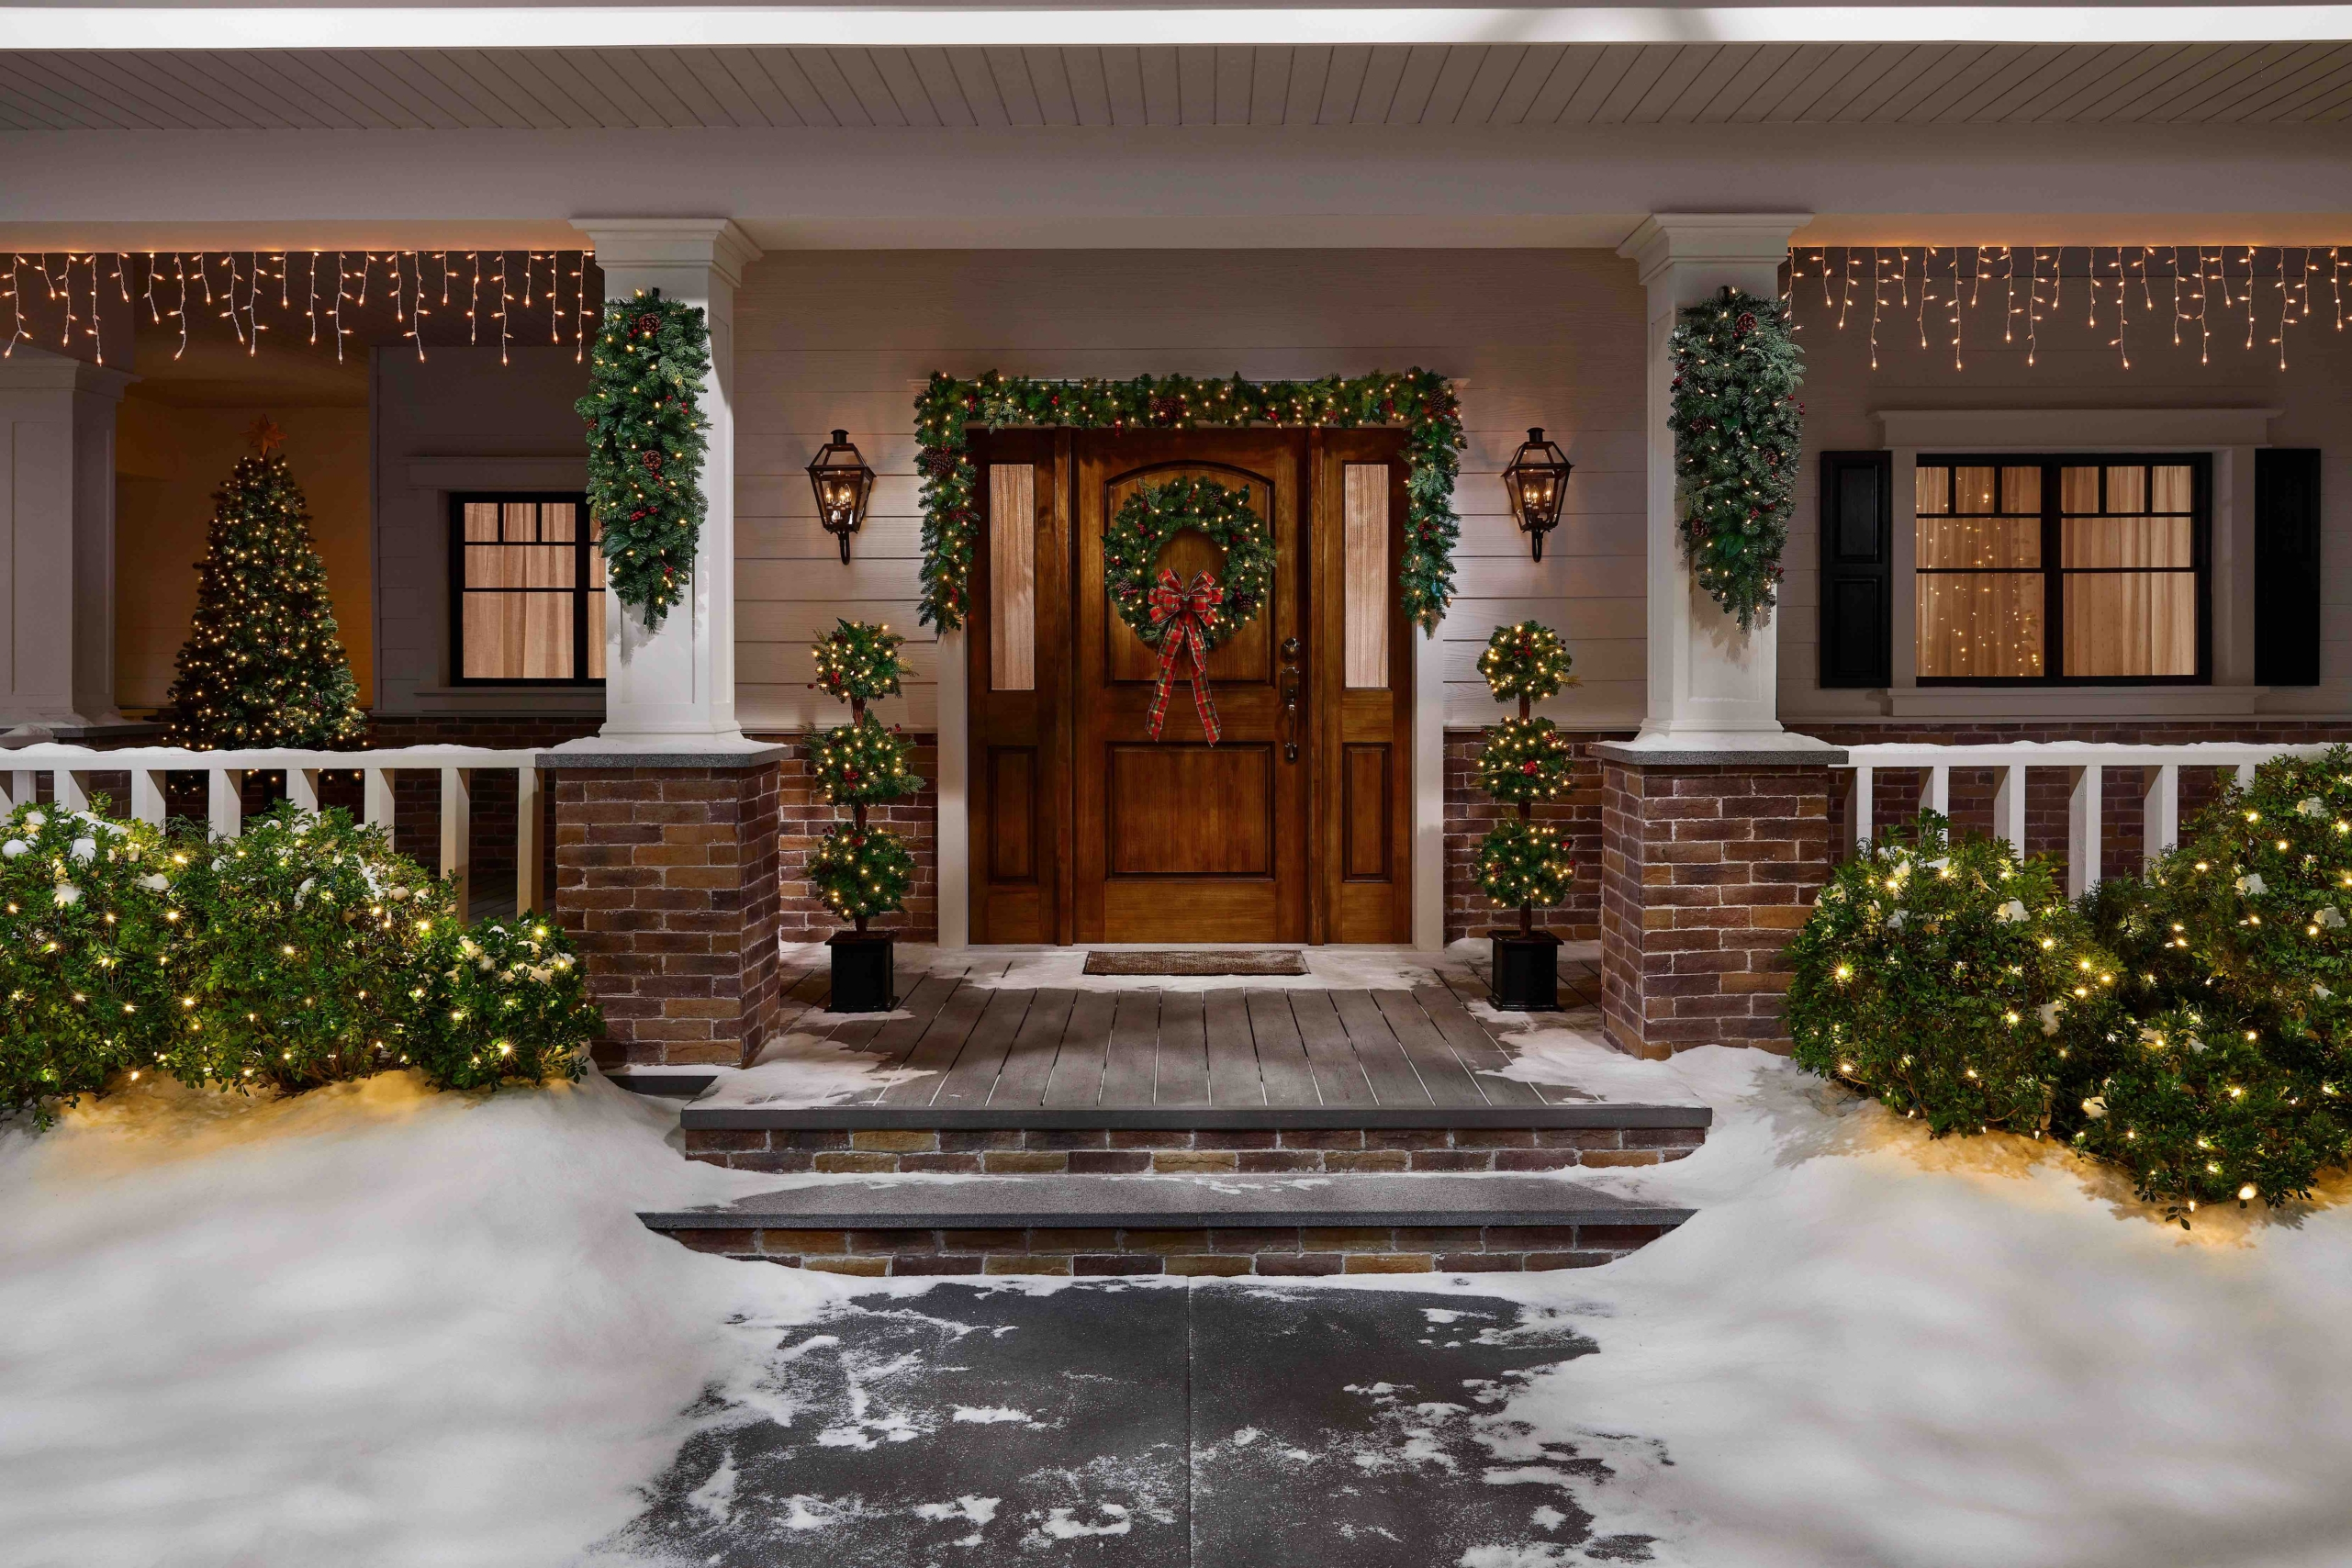 Home Depot's Holiday Décor Makes You Wish It Was December All Year